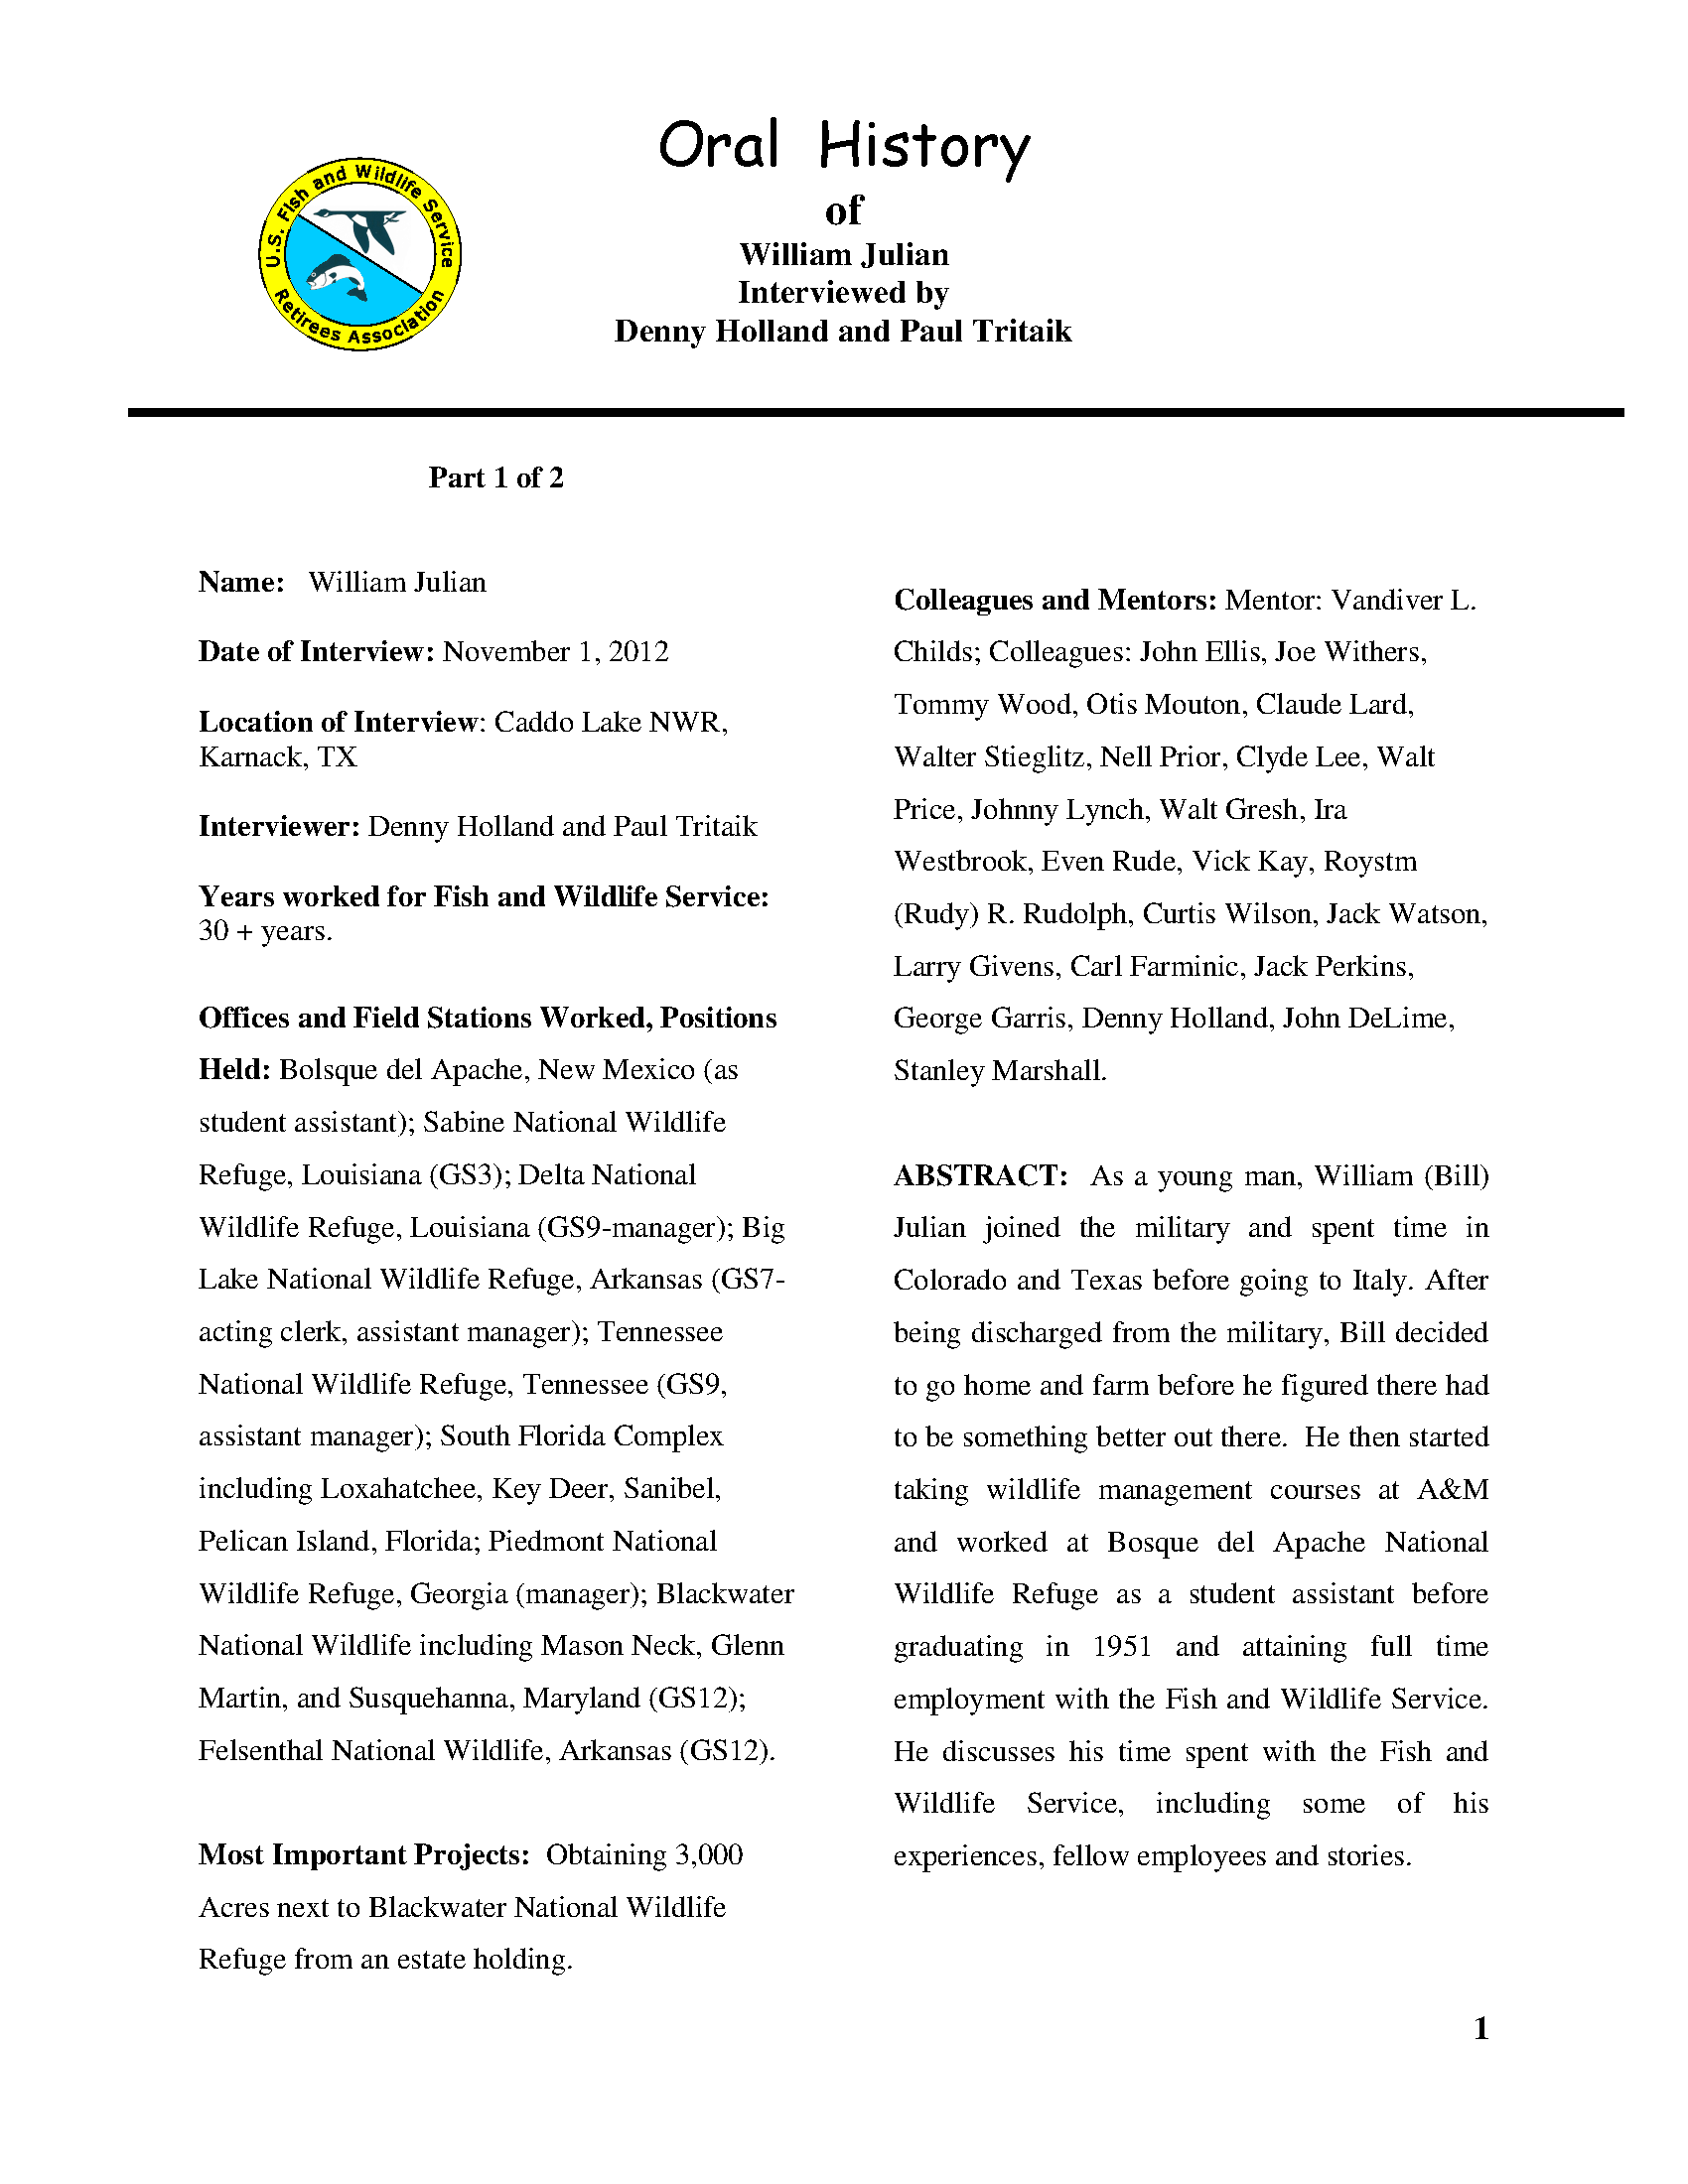 William Julian oral history, Part 1 of 2 - Documents - USFWS ...